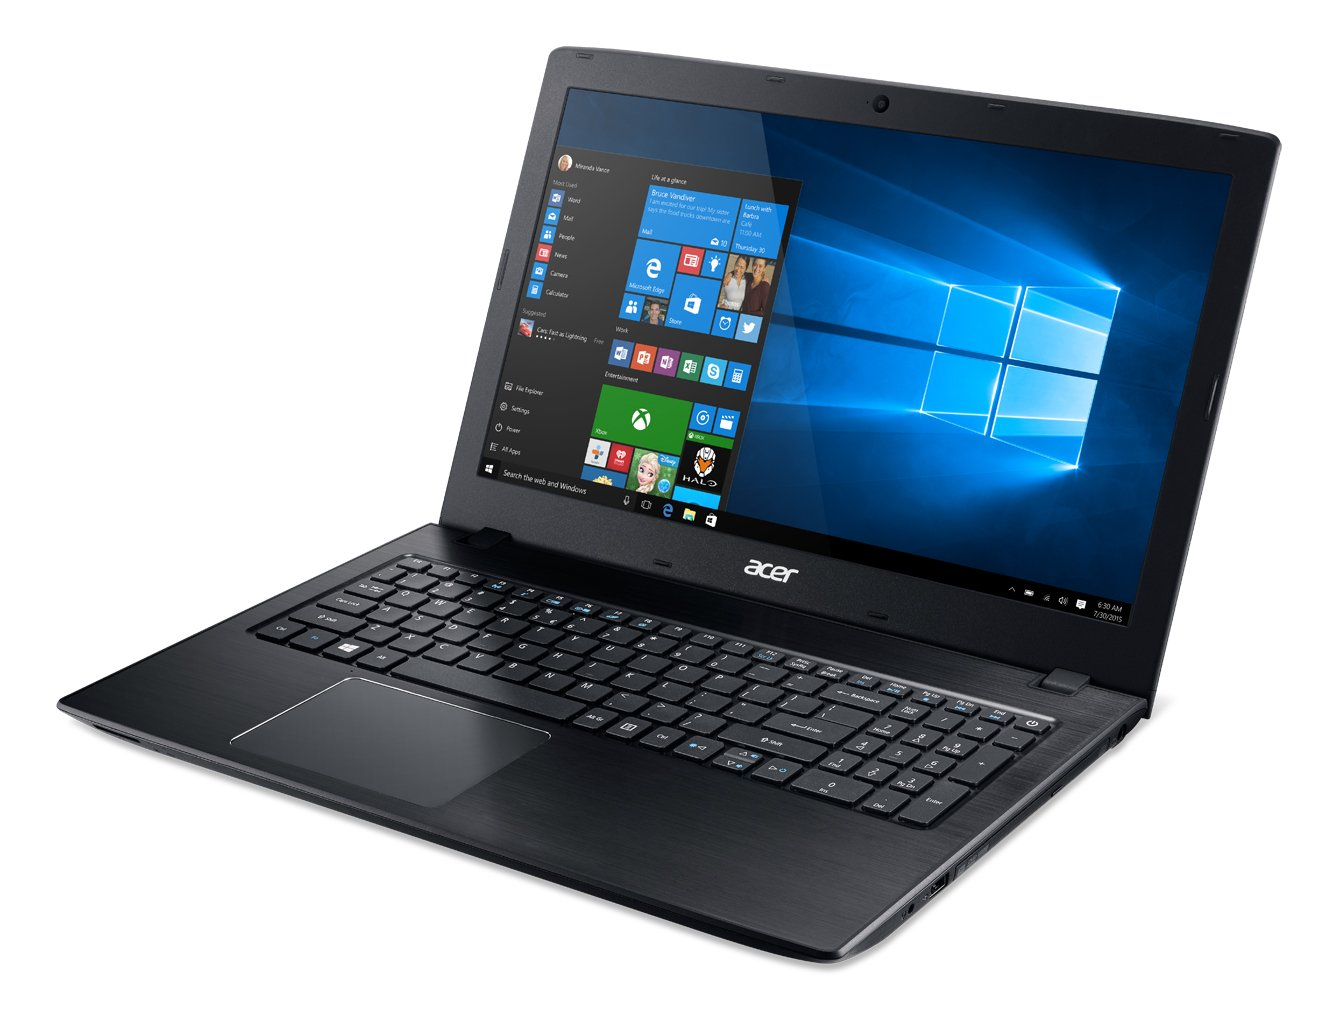 Acer Aspire E 15, 15.6 Full HD, 7th Gen Intel Core i5, NVIDIA 940MX, 8GB DDR4, 256GB SSD, Windows 10, E5-575G-57D4